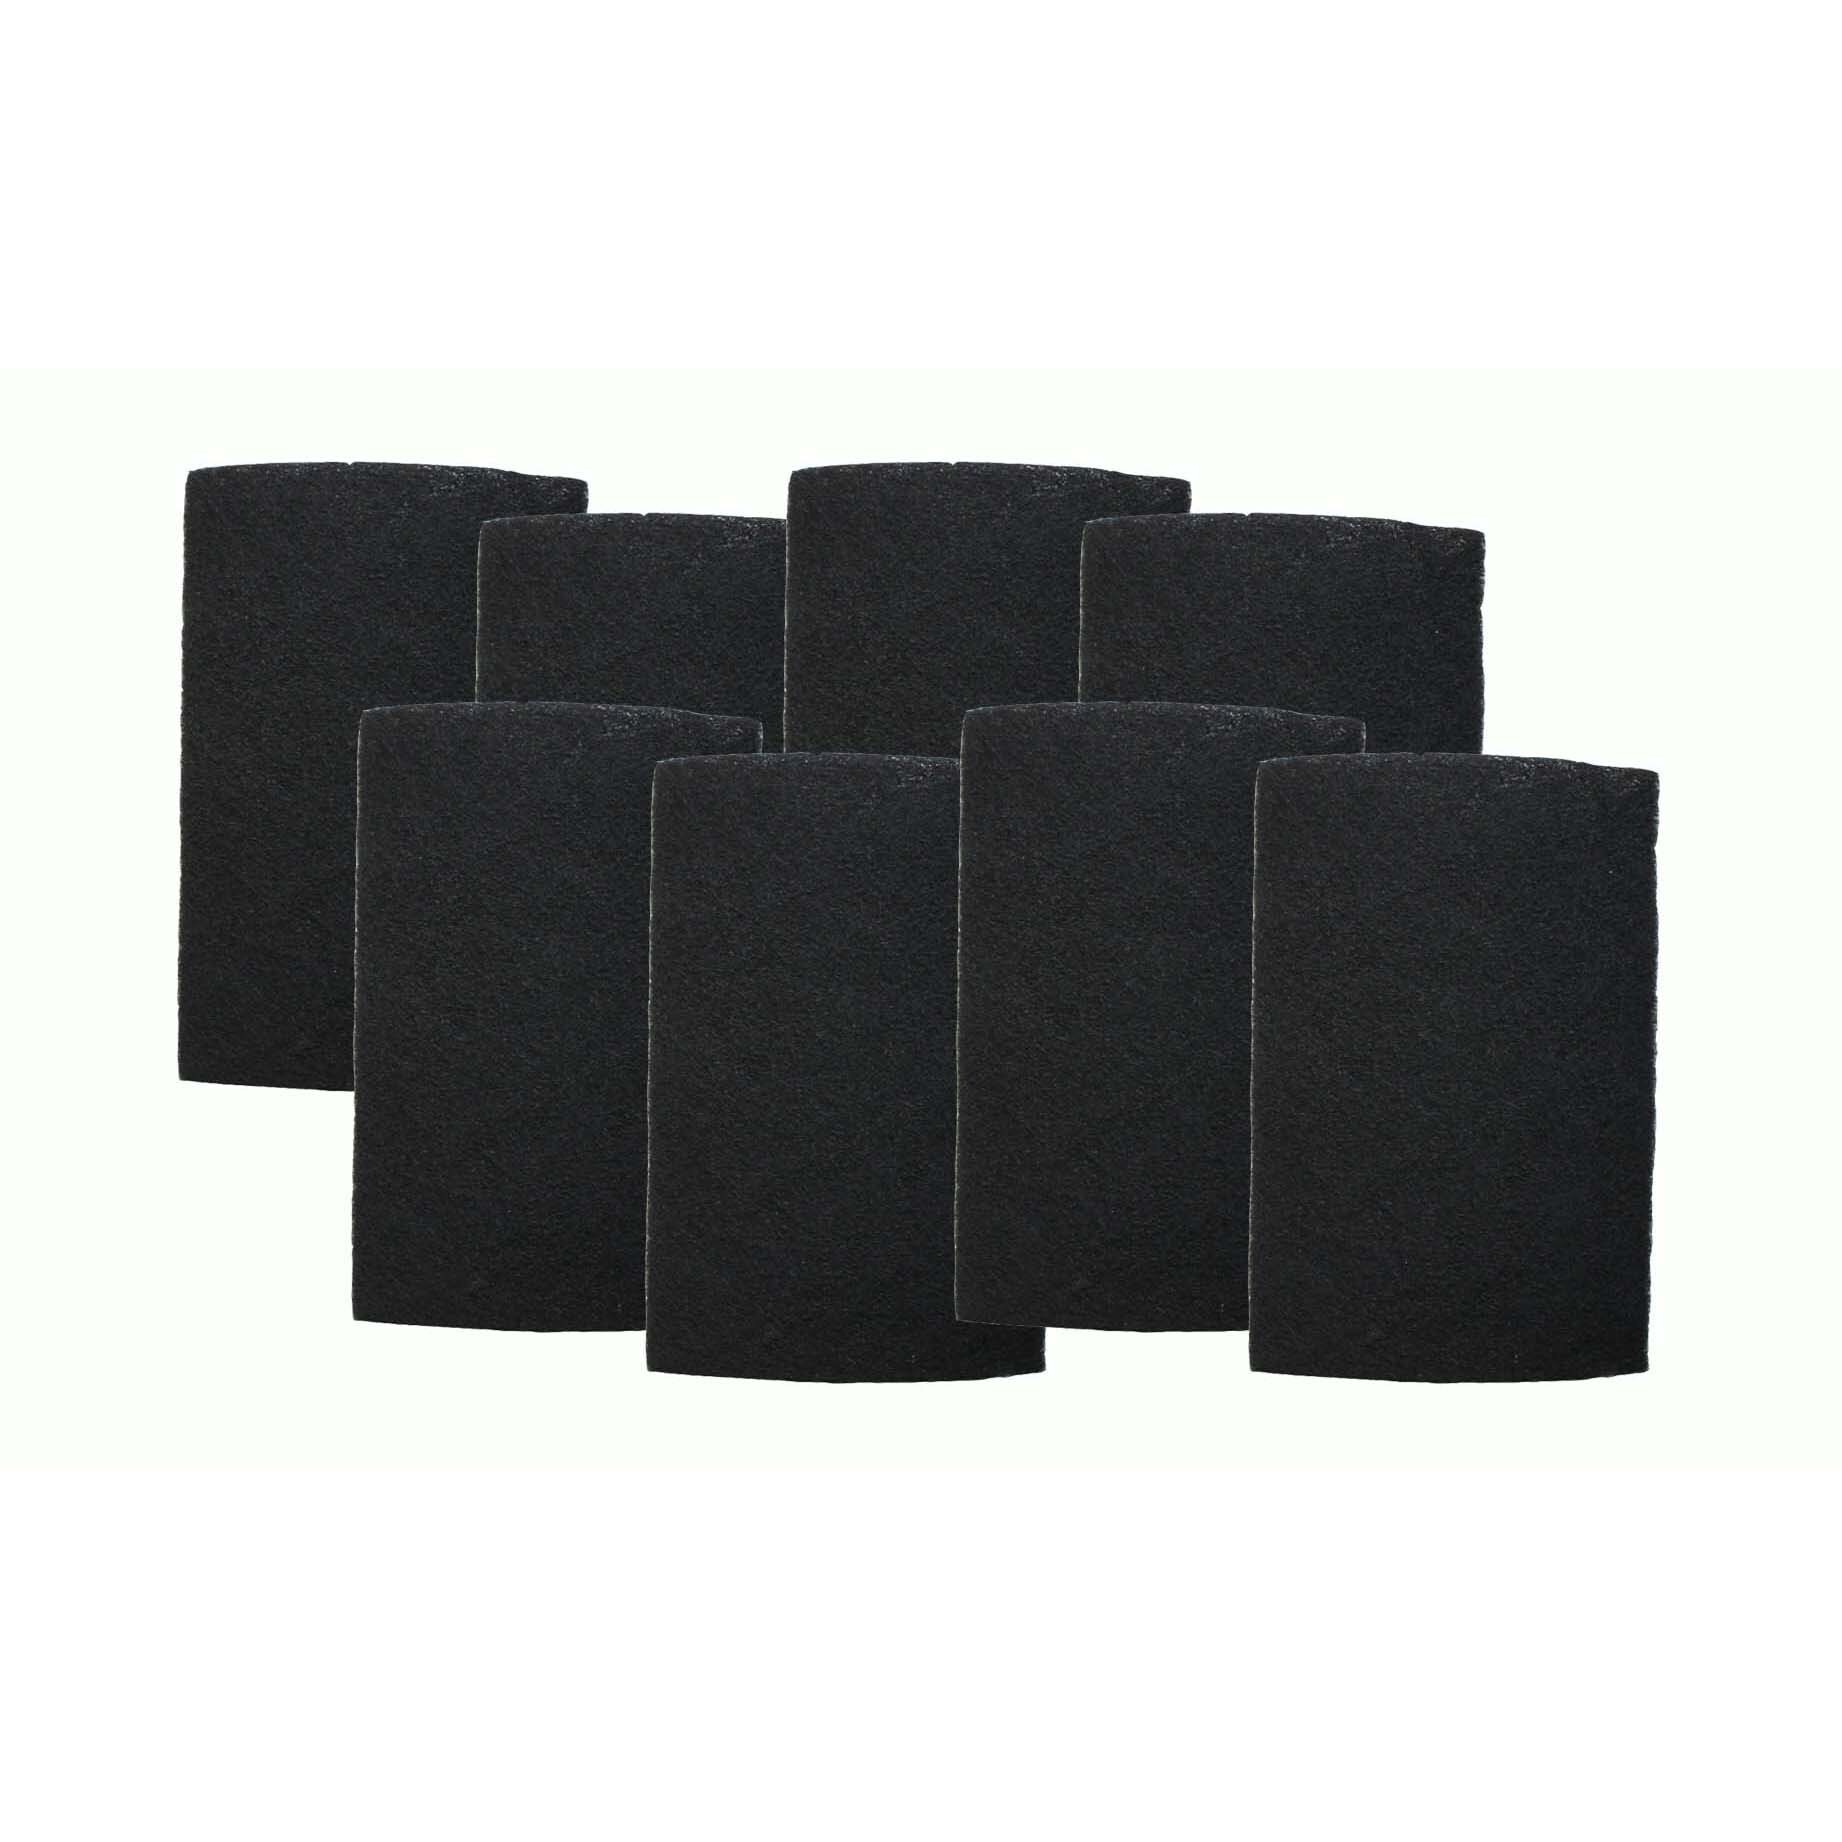 Crucial 8 Holmes HAPF60 Air Purifier Carbon Filters, Part...